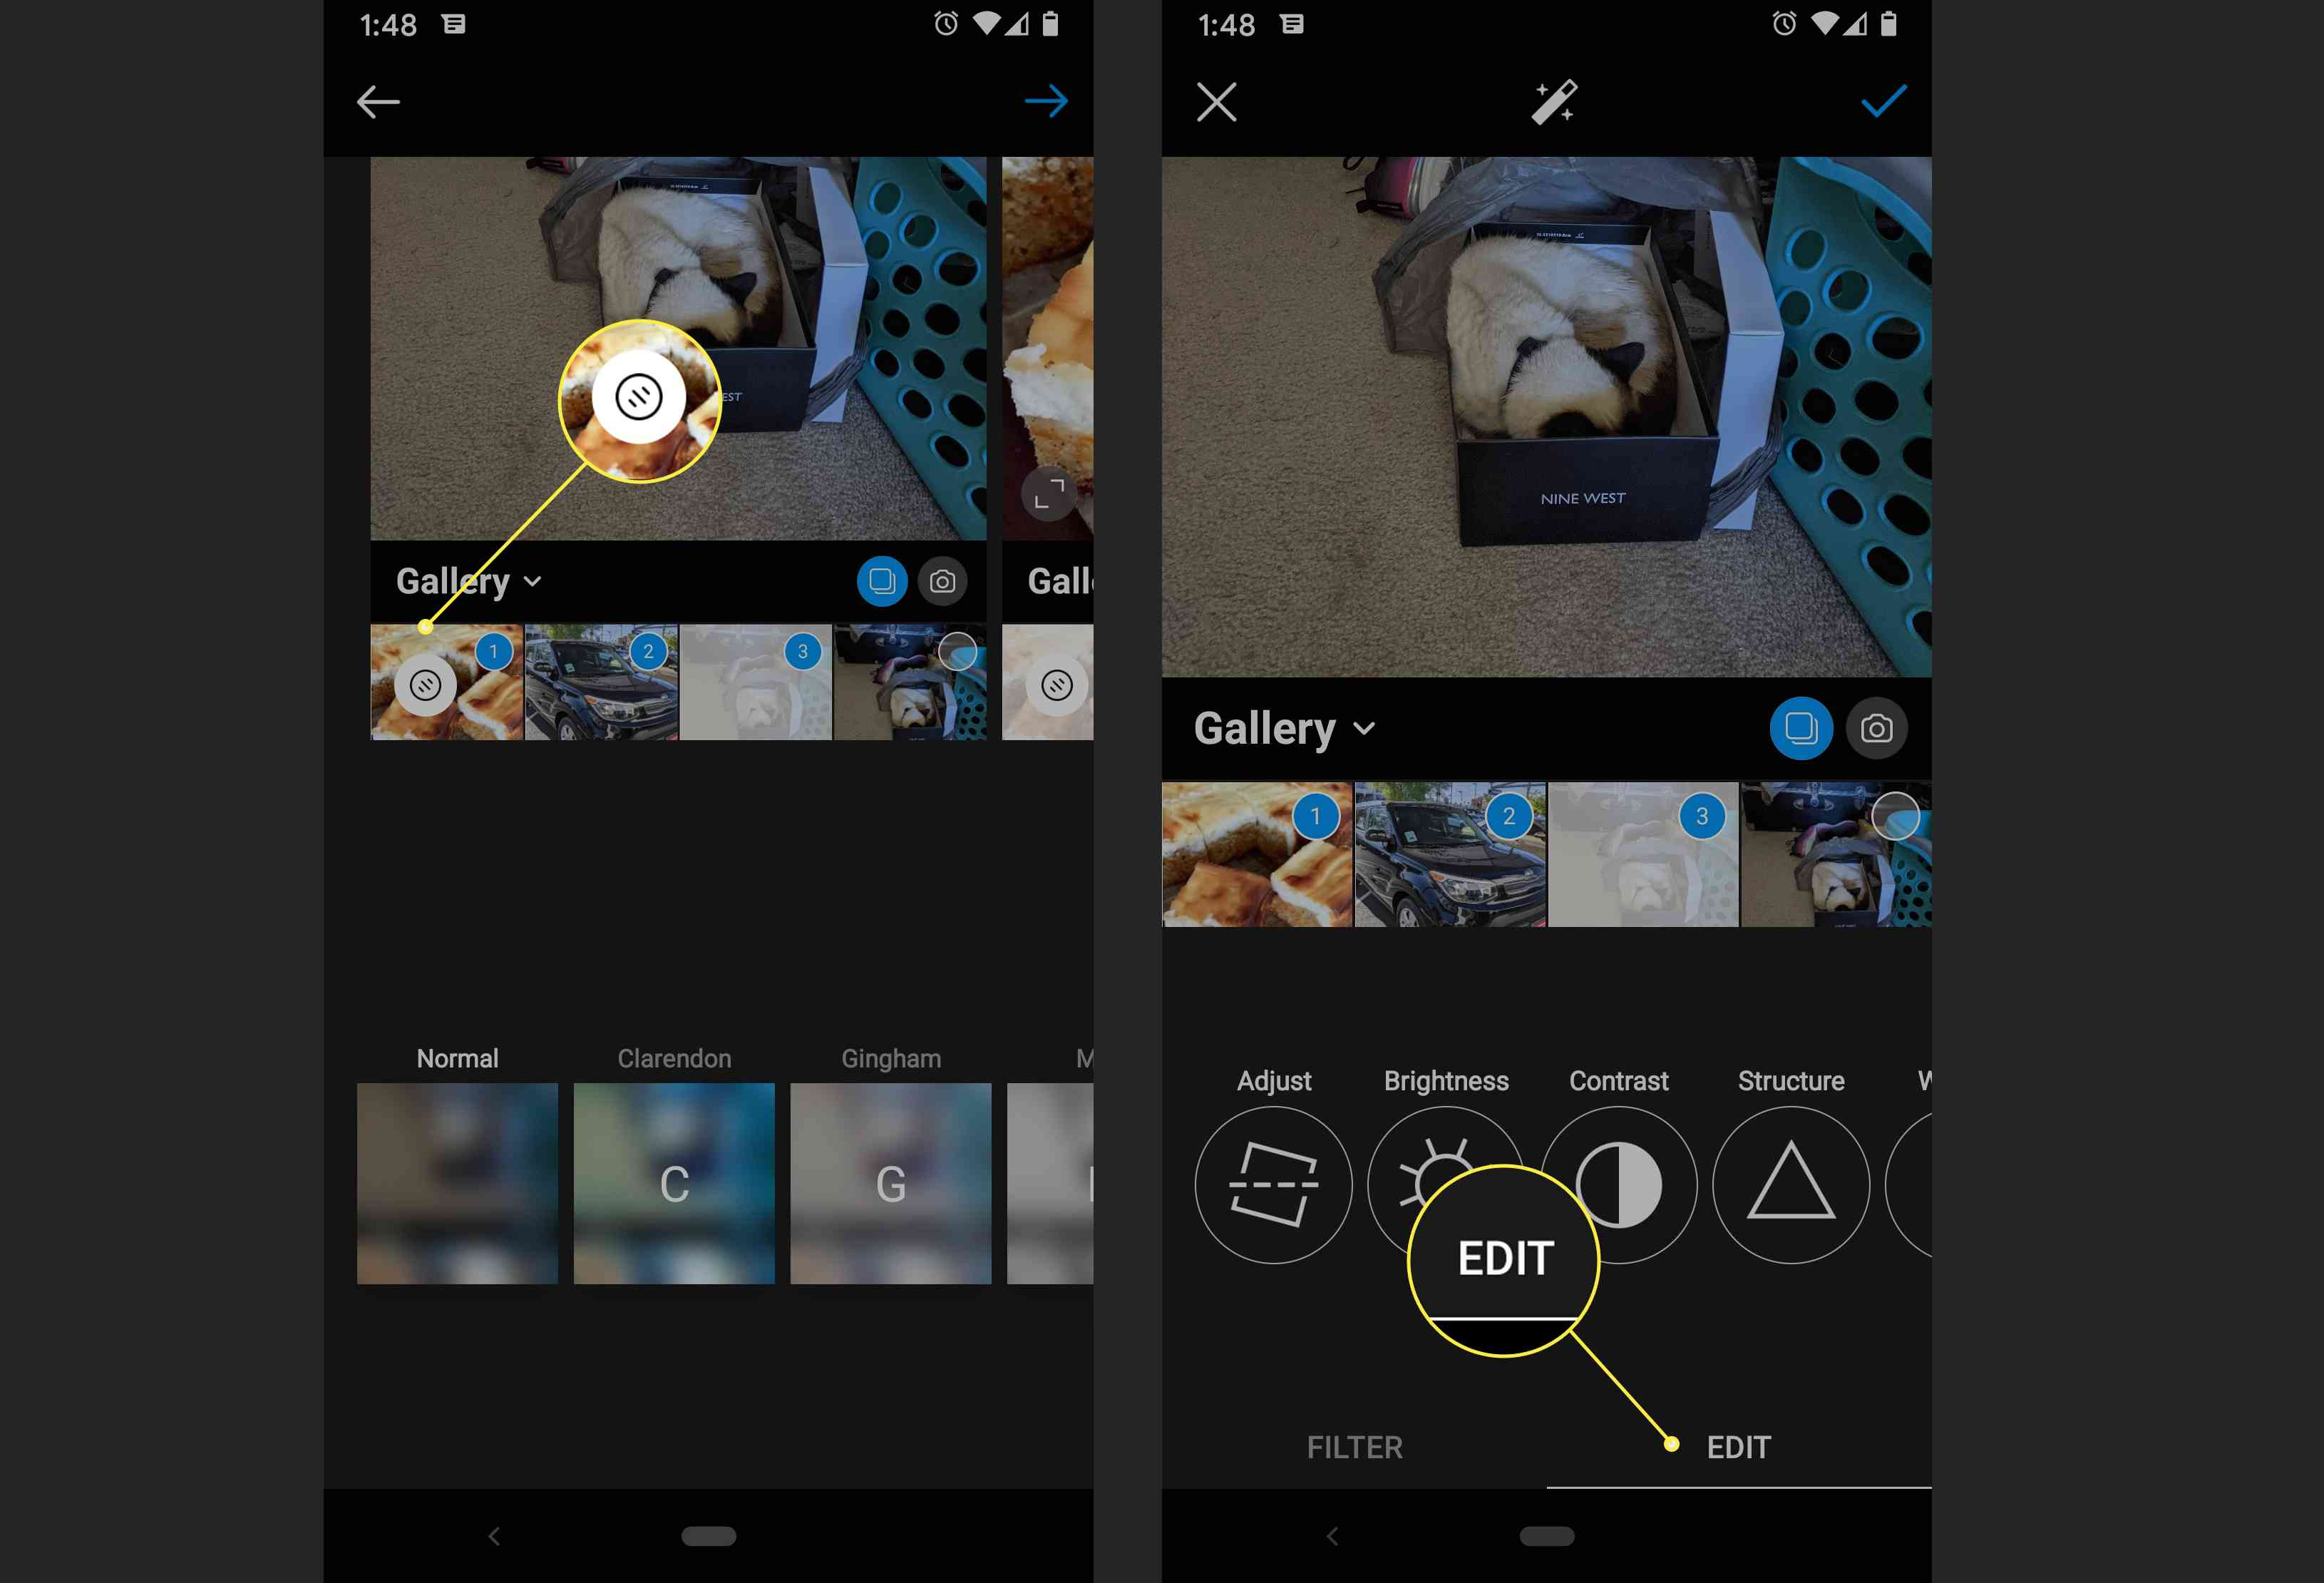 An Instagram user edits multiple photos for a new post